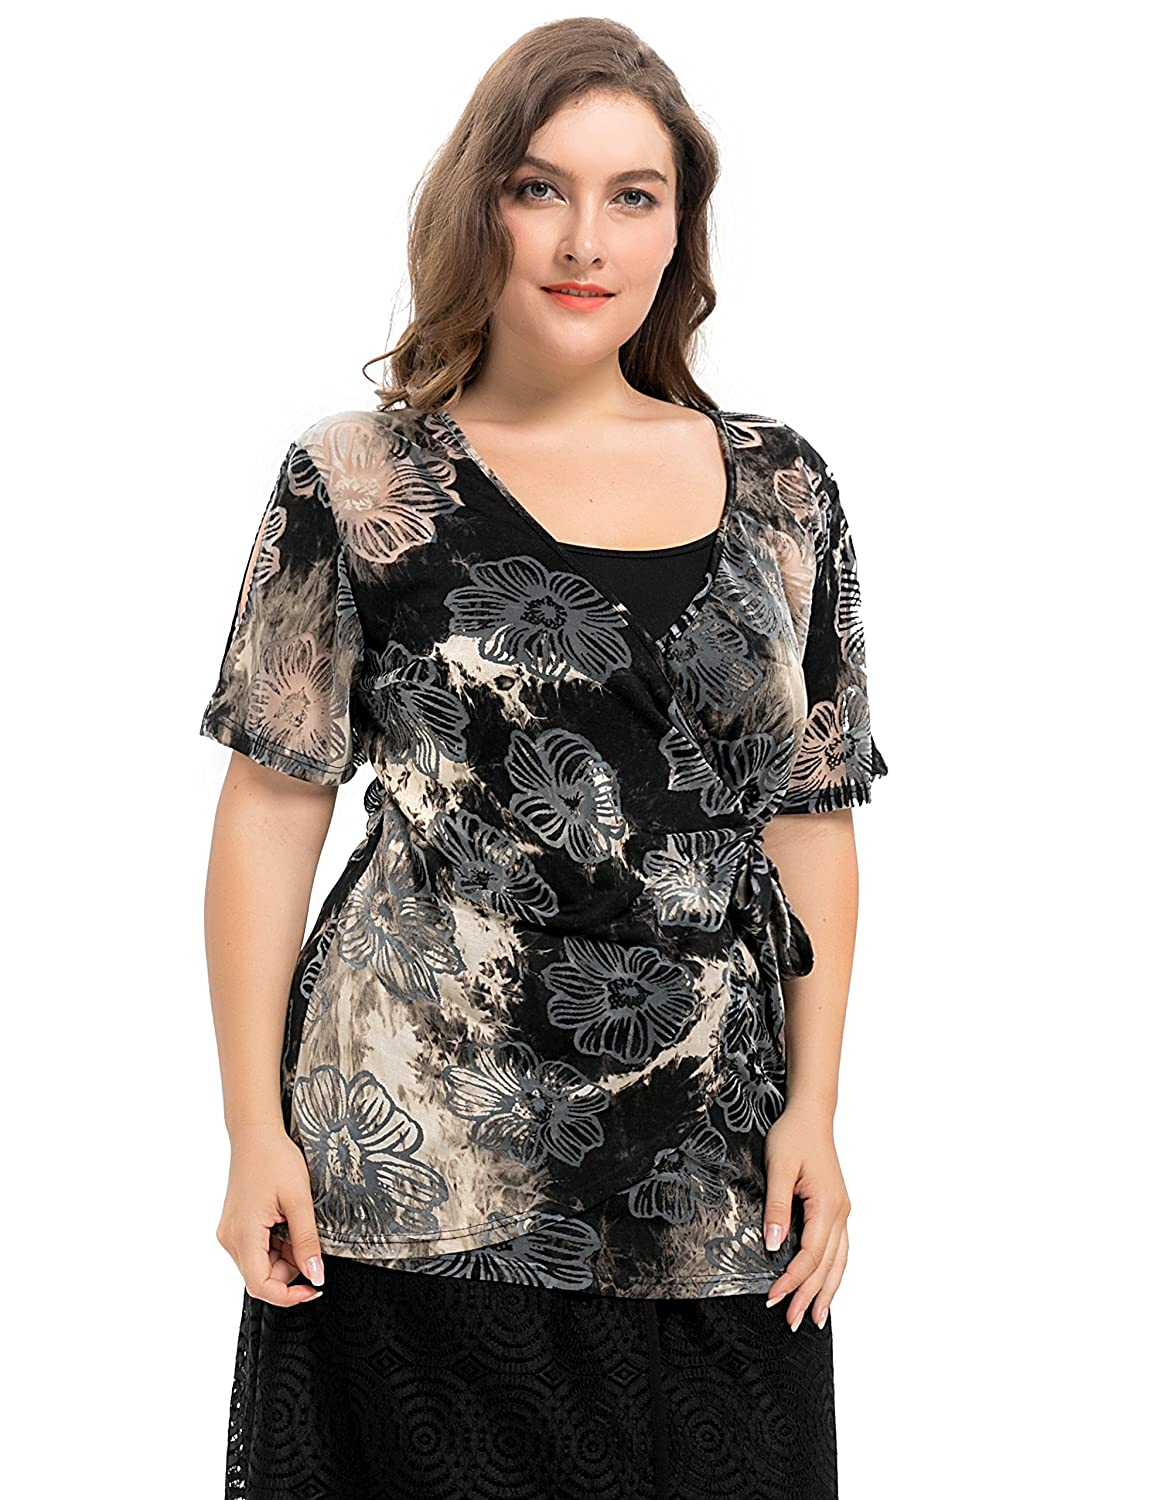 5c802efd09e09 Chicwe Women s Plus Size Tie Dyed Floral Printed Jersey Wrap Top with  Adjustable Camisole 1X at Amazon Women s Clothing store